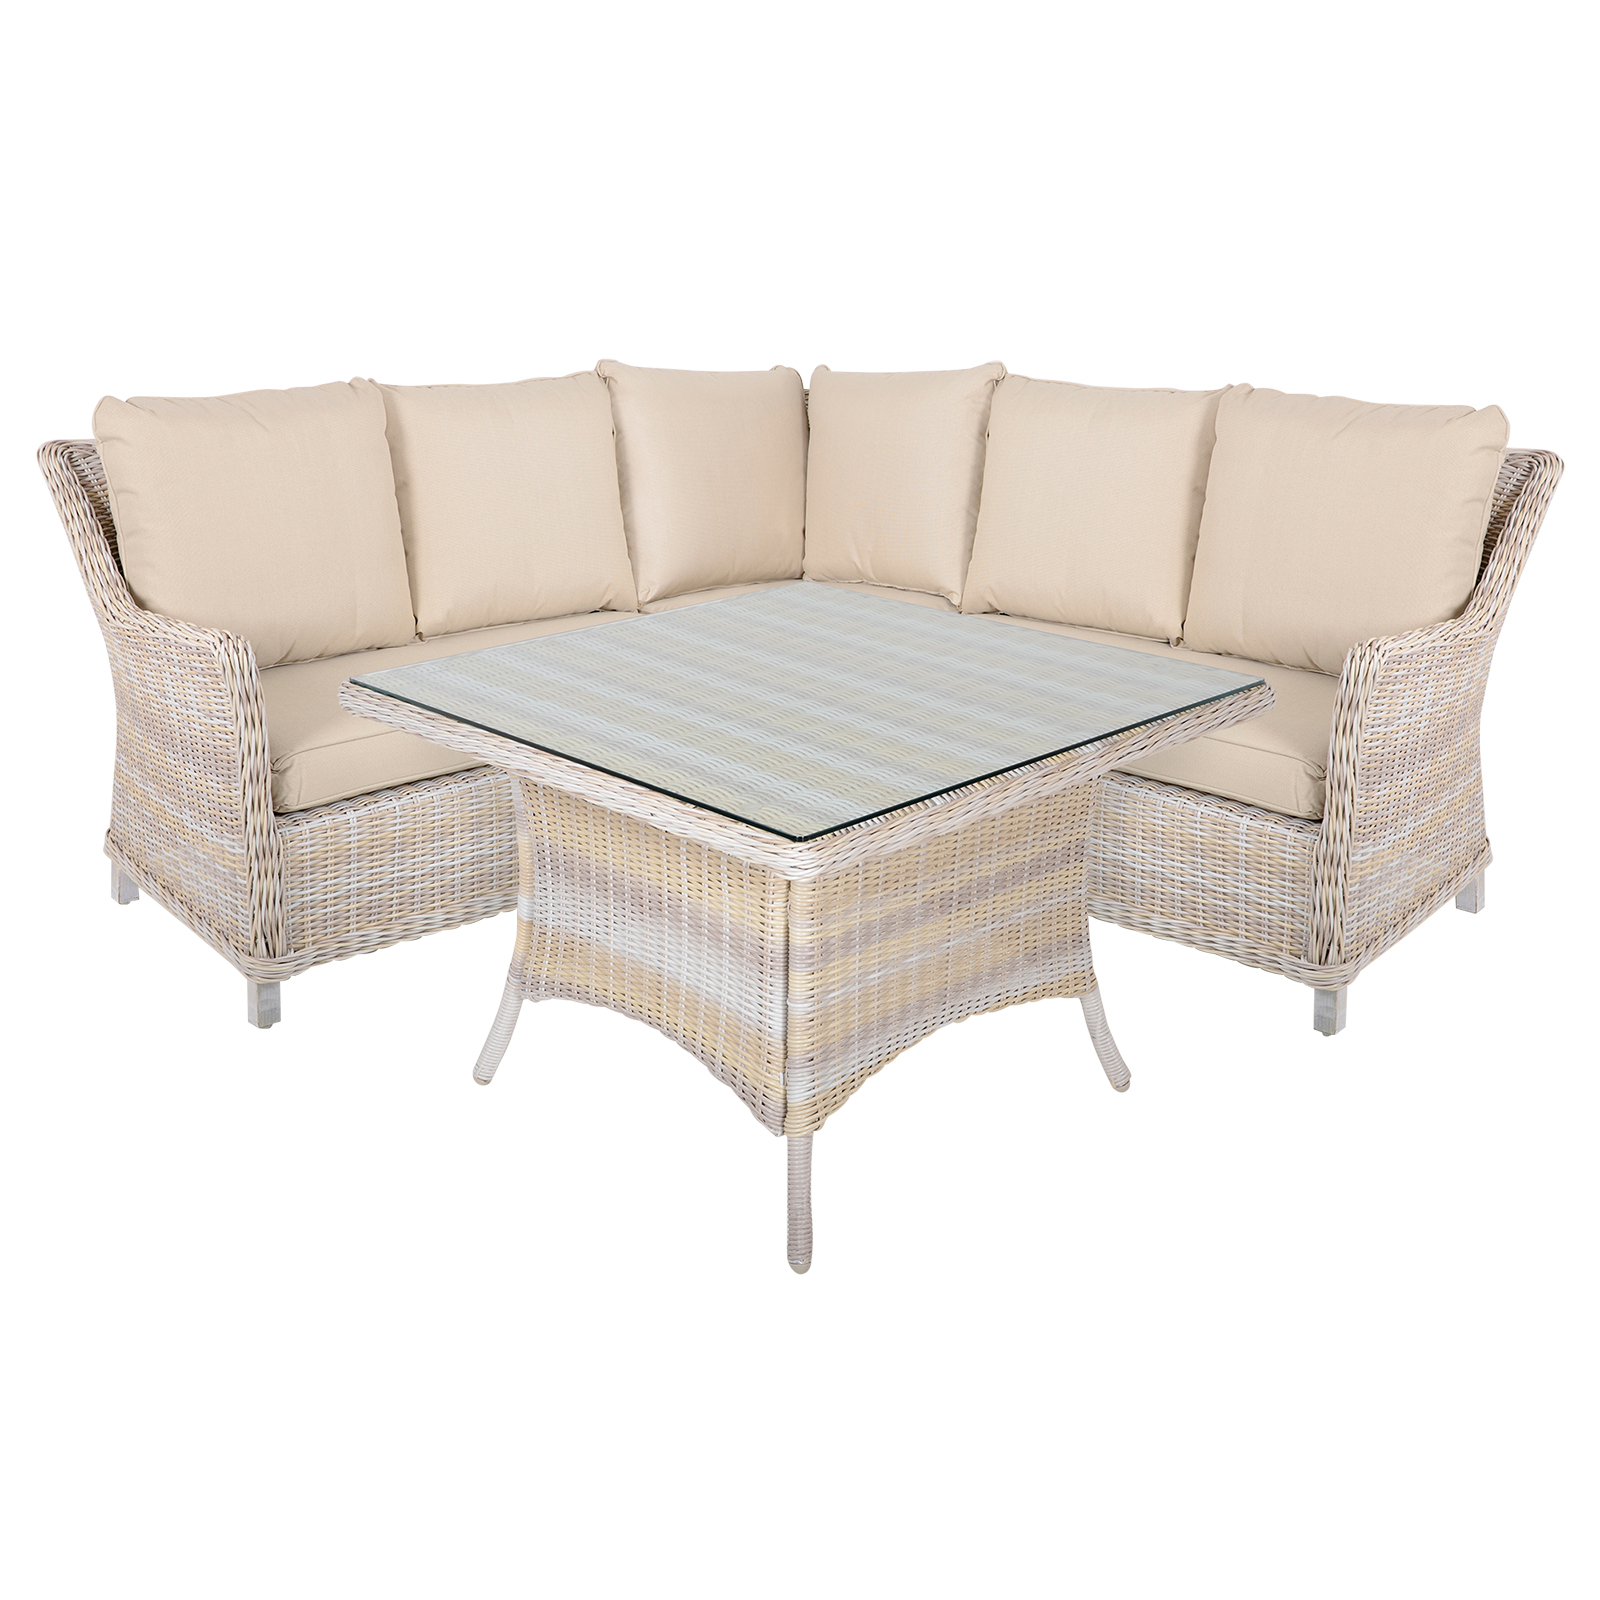 Rattan Corner Sofa Set Ebay Garden Rattan Barbados Furniture Patio Outdoor Lounge